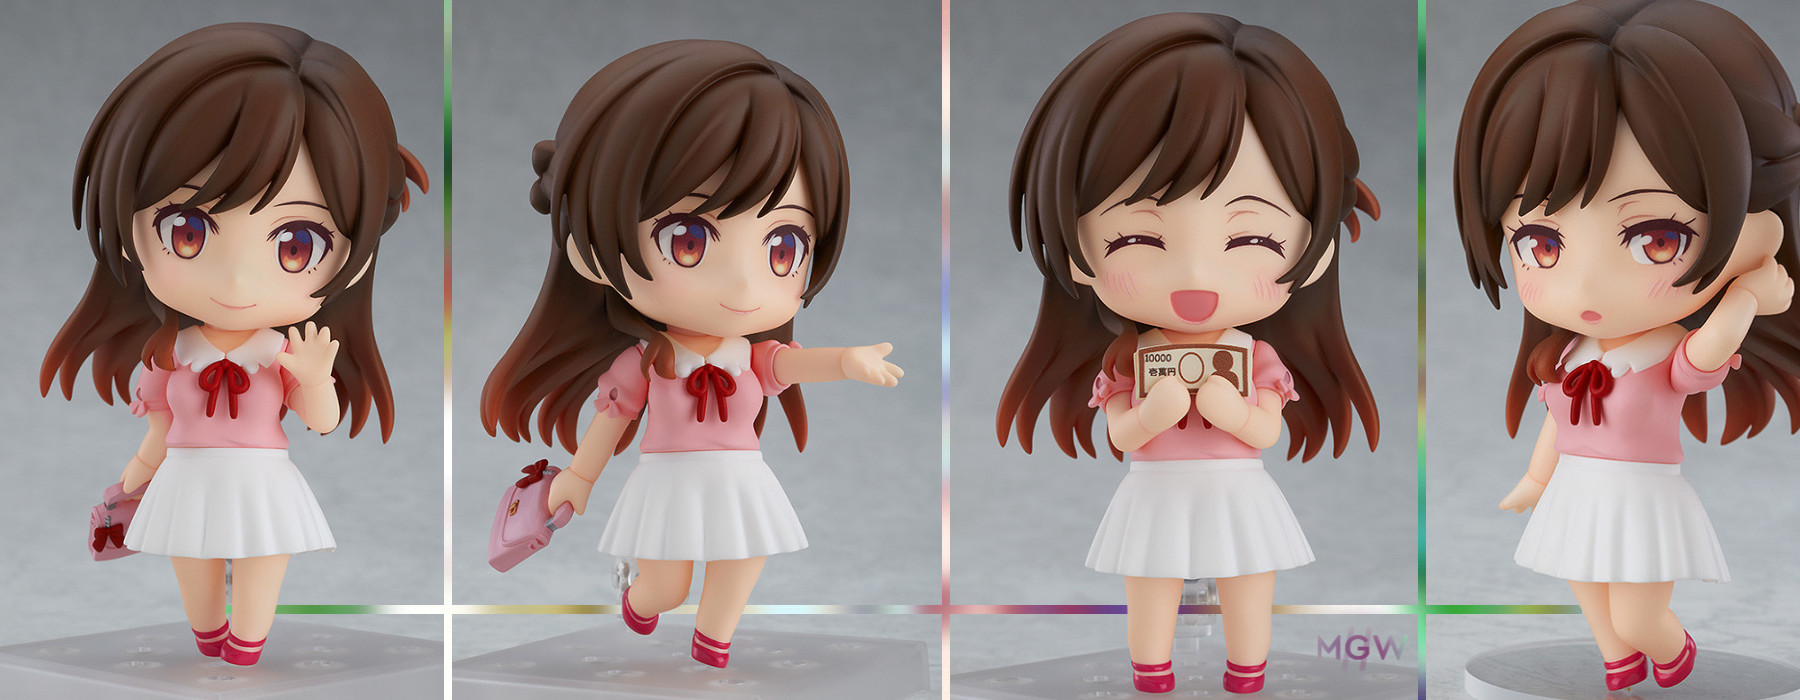 Nendoroid Chizuru Mizuhara by Good Smile Company from Rent A Girlfriend